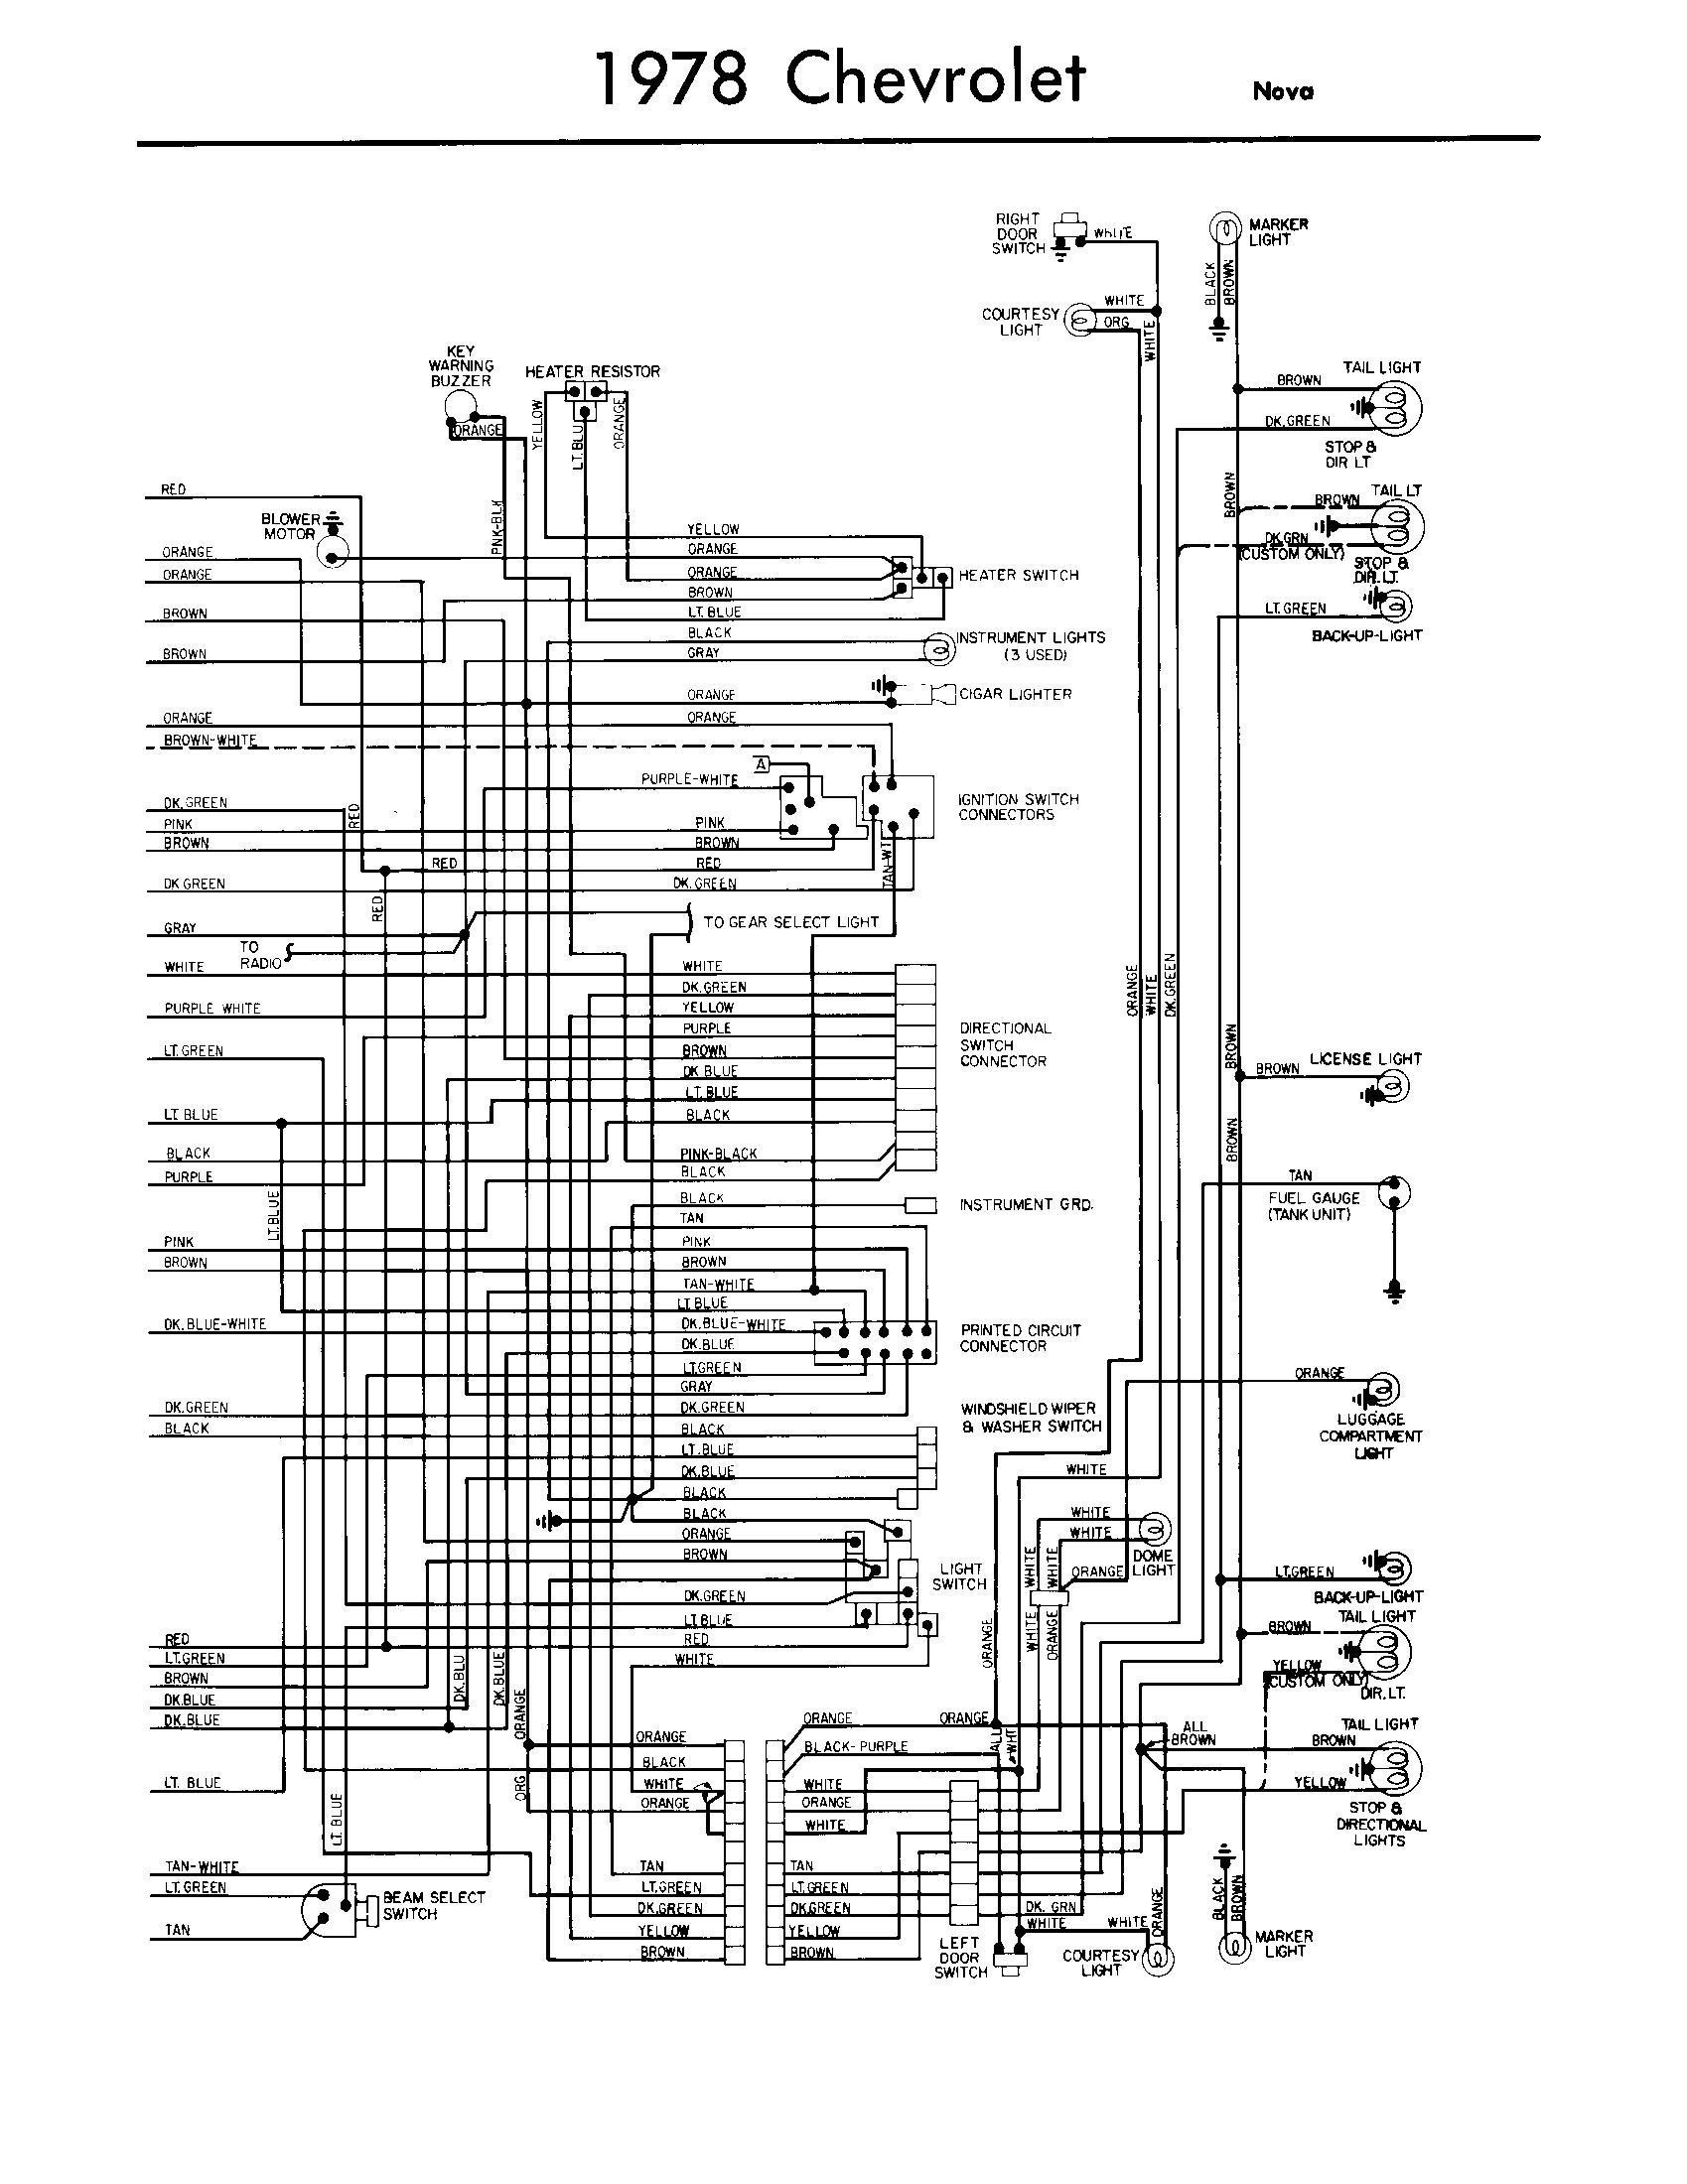 hight resolution of wiring diagram 1978 chevy blower wiring diagram query 1978 chevy luv wiring diagram 1978 chevrolet wiring diagram